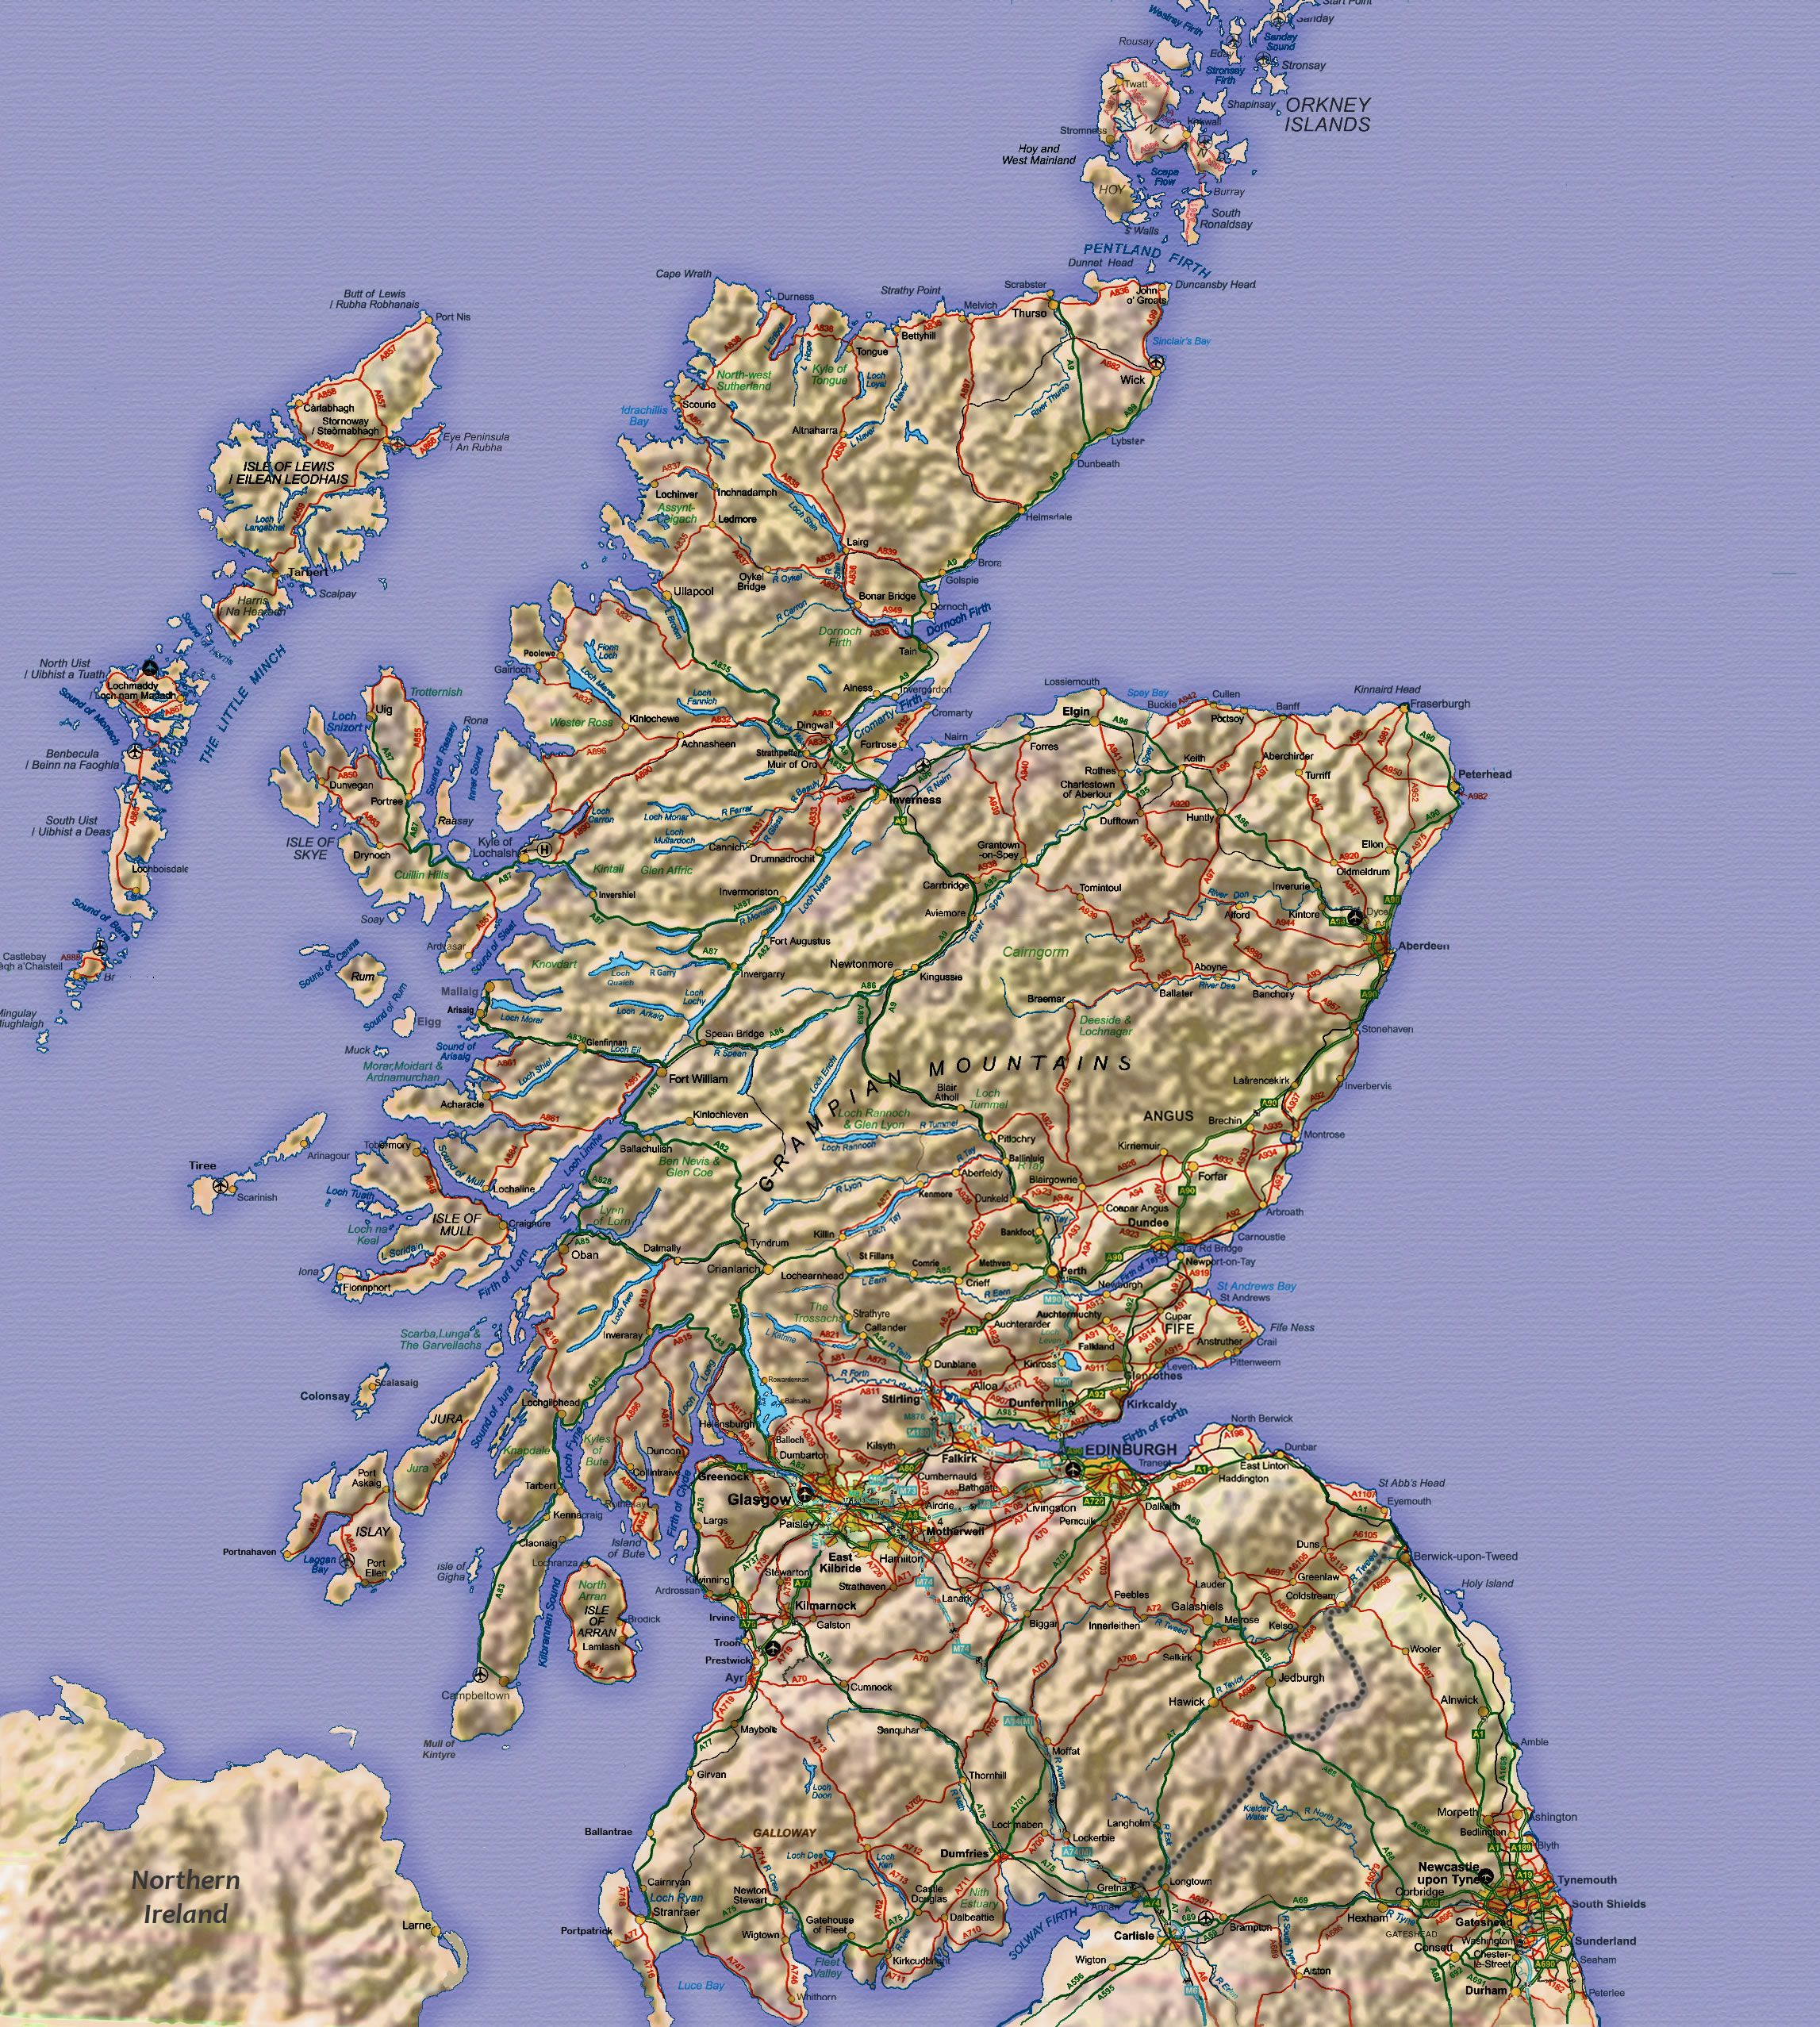 This large scale map of Scotland showing towns and main roads may be